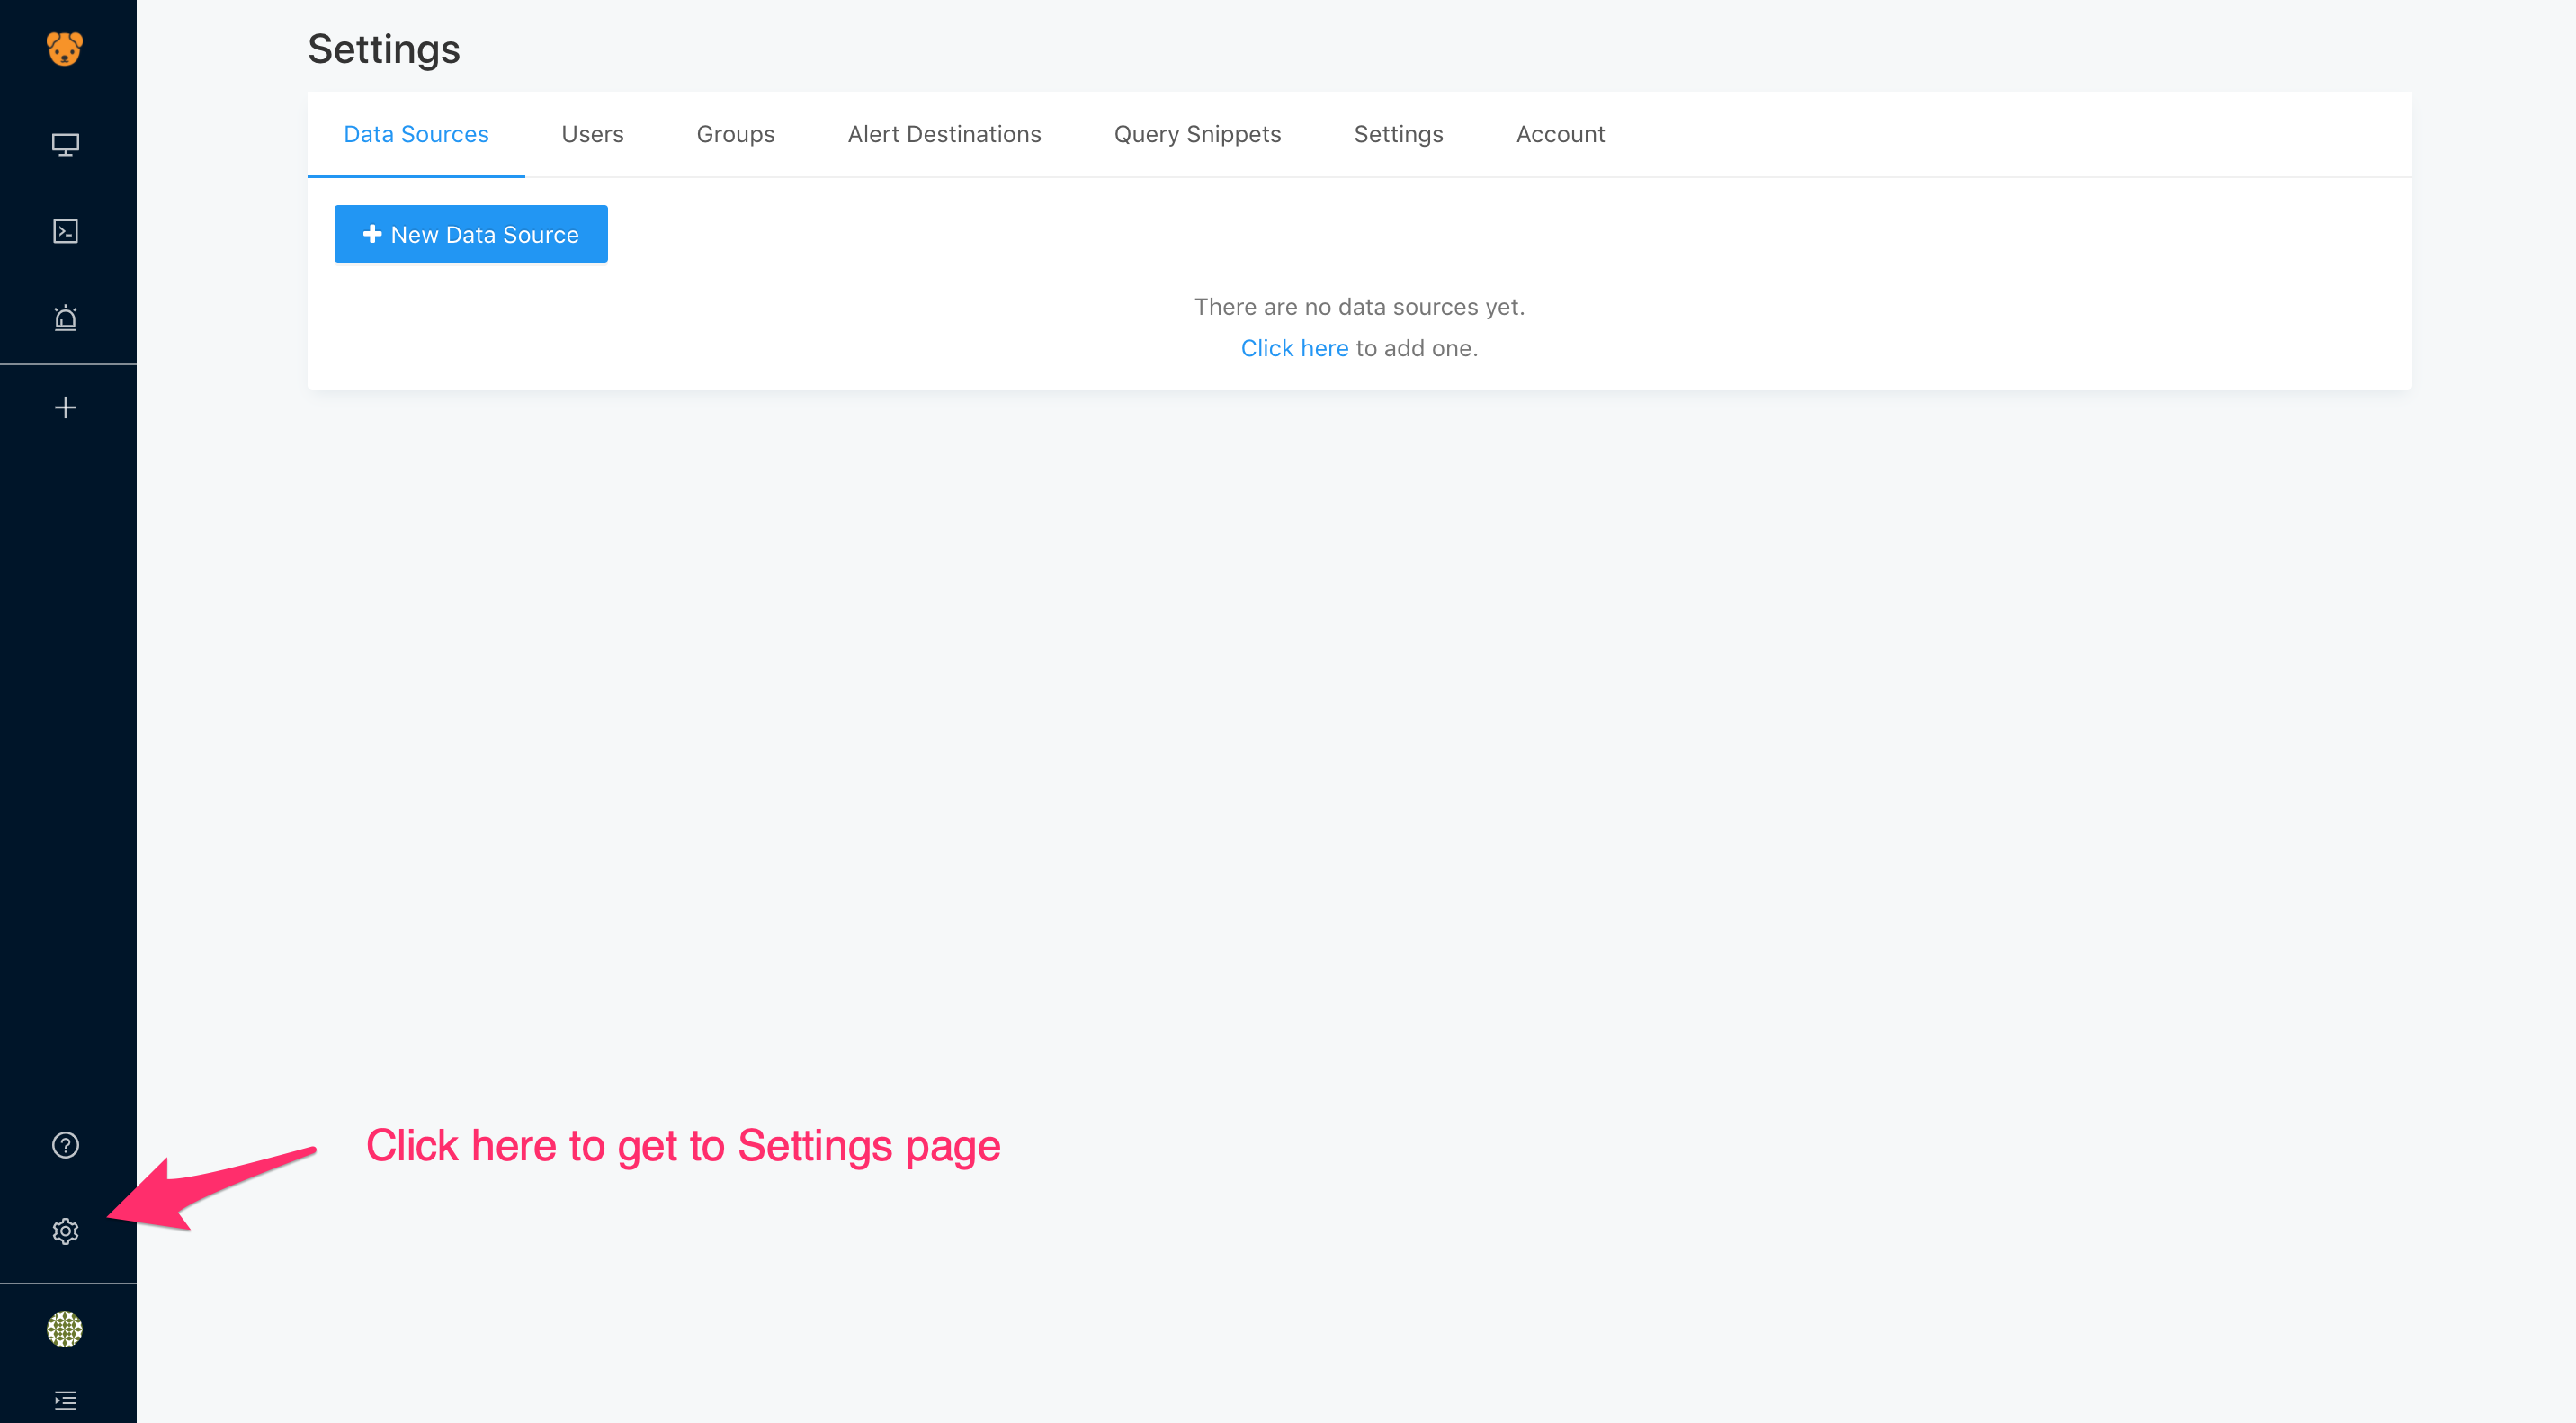 Open Settings Page